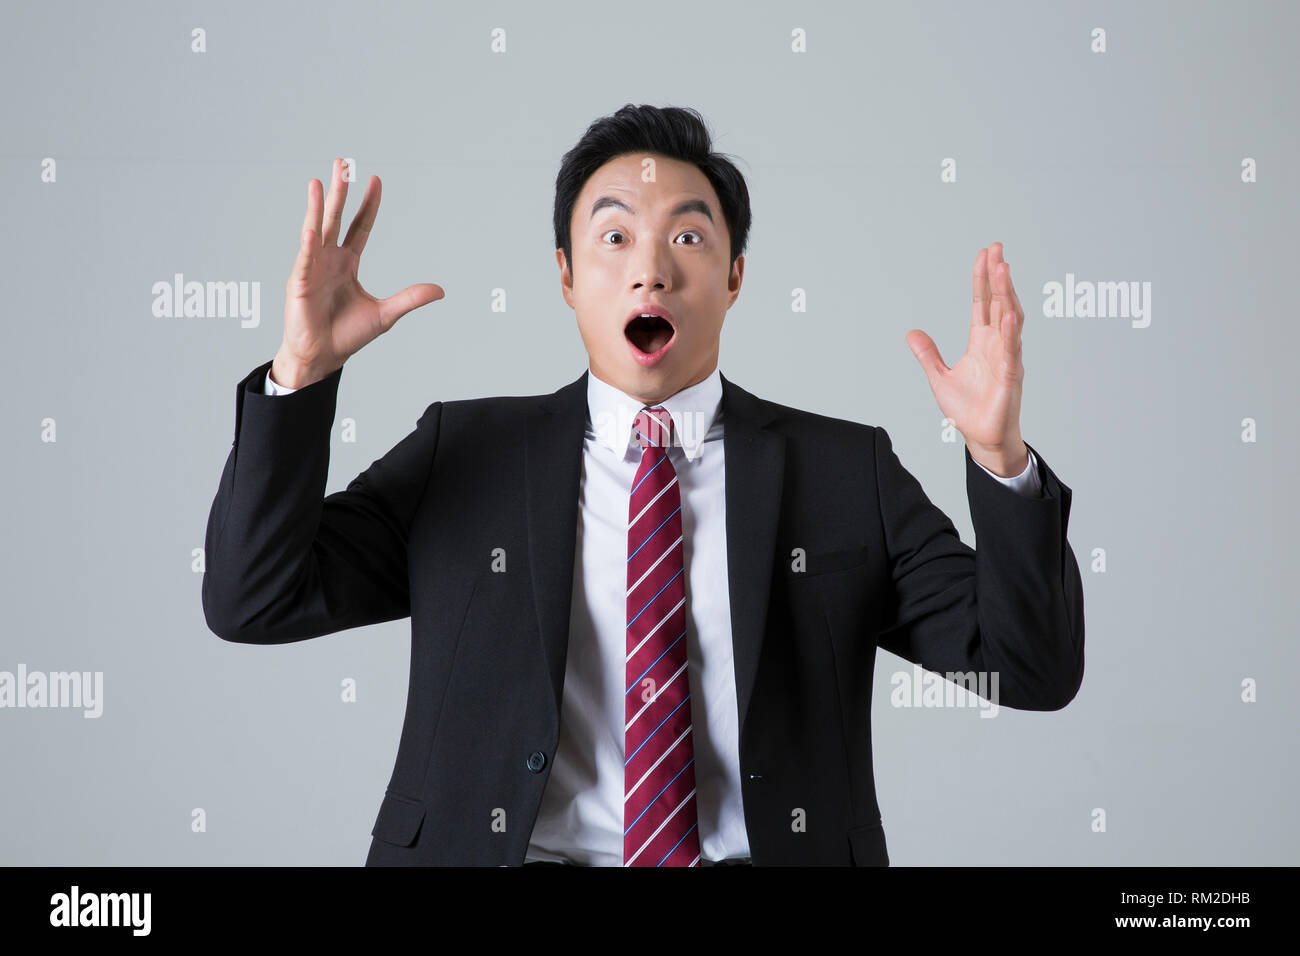 Young businessman concept photo. 025 - Stock Image